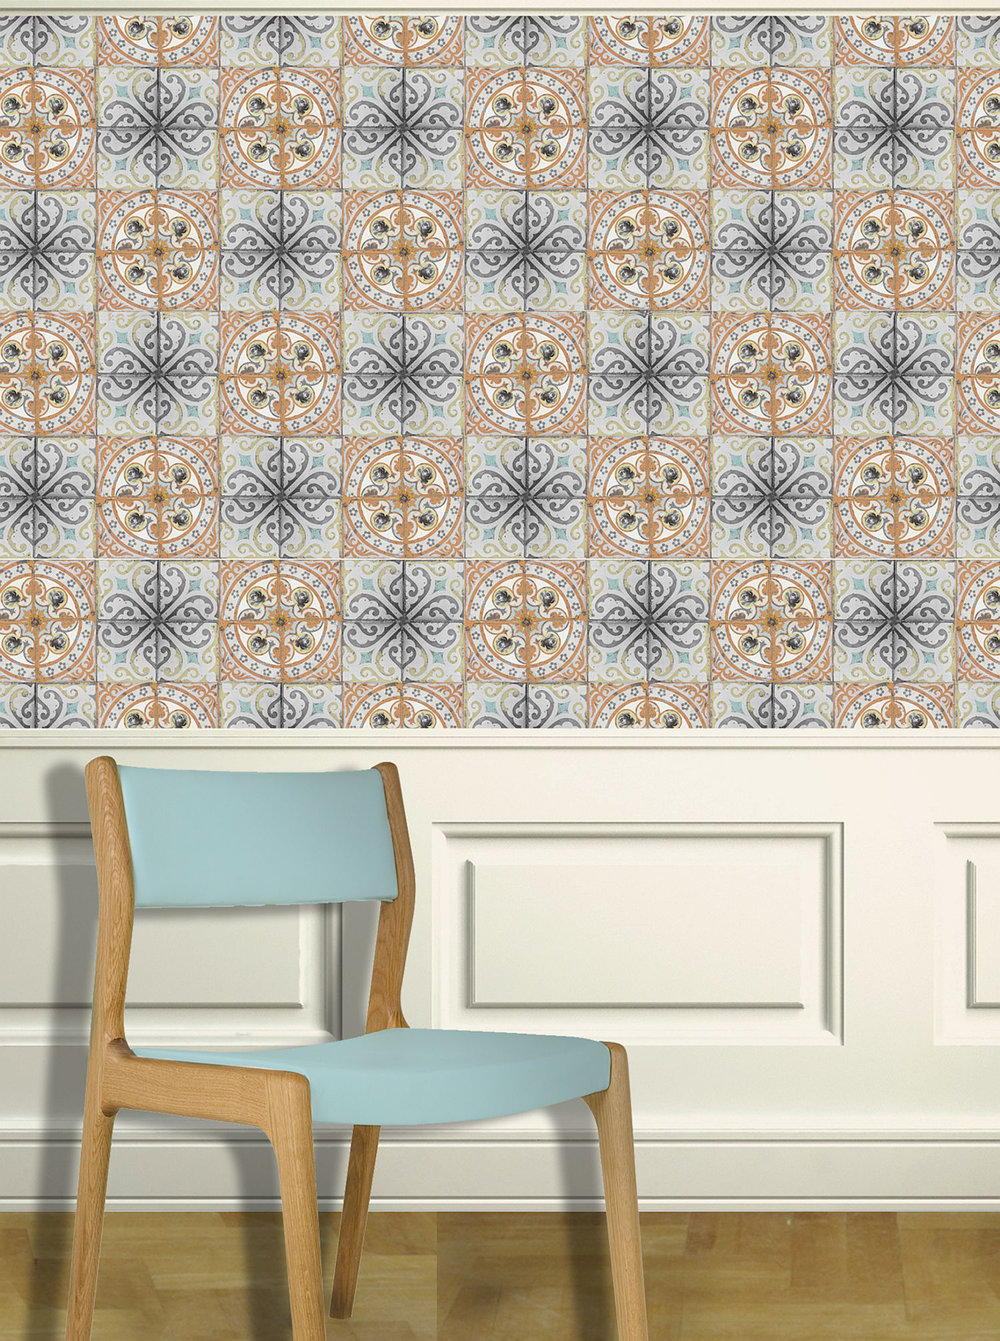 Louise Body Orange Rose Orange / Grey / Blue Wallpaper - Product code: Orange Rose